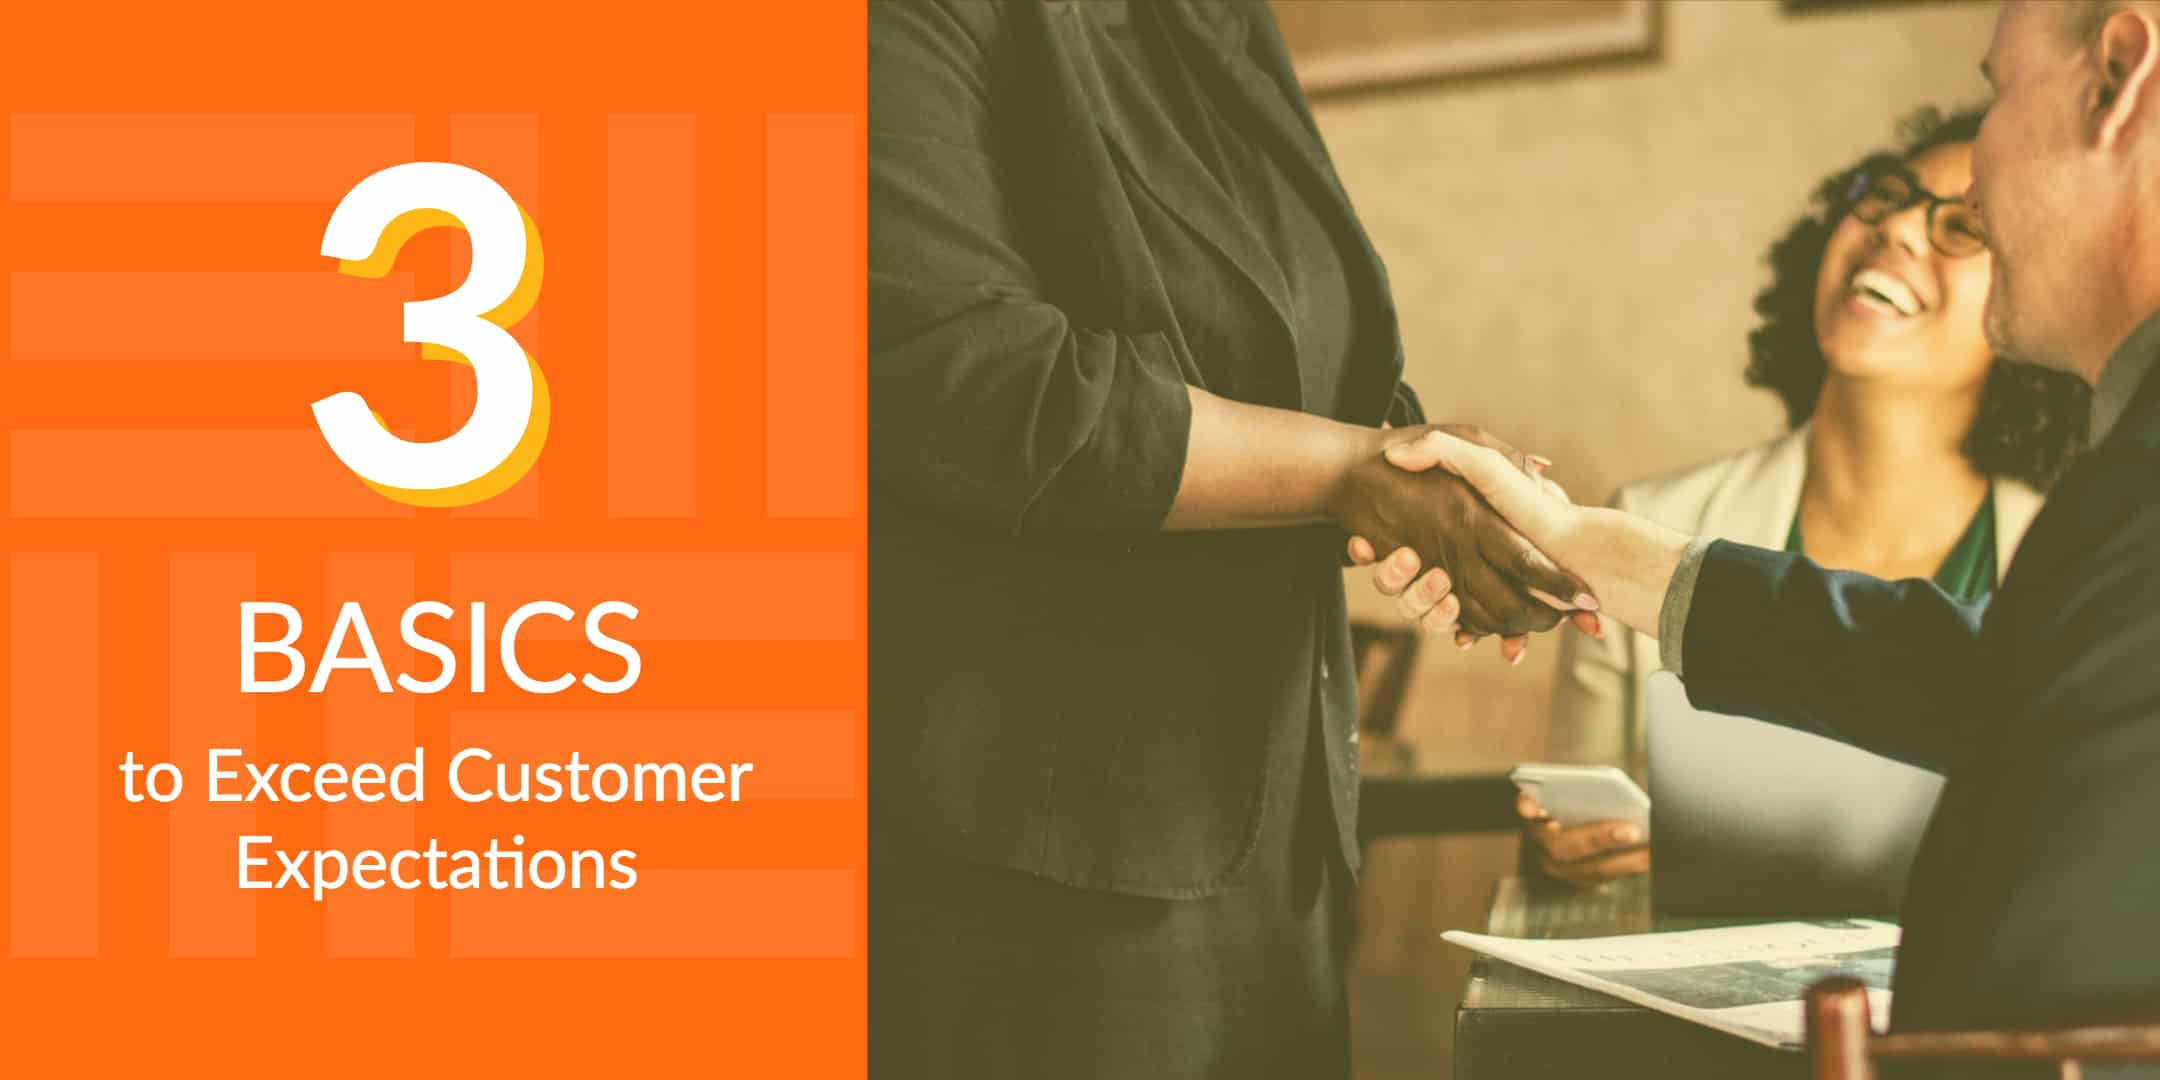 3 Basics to Exceed Customer Expectations StrasGlobal